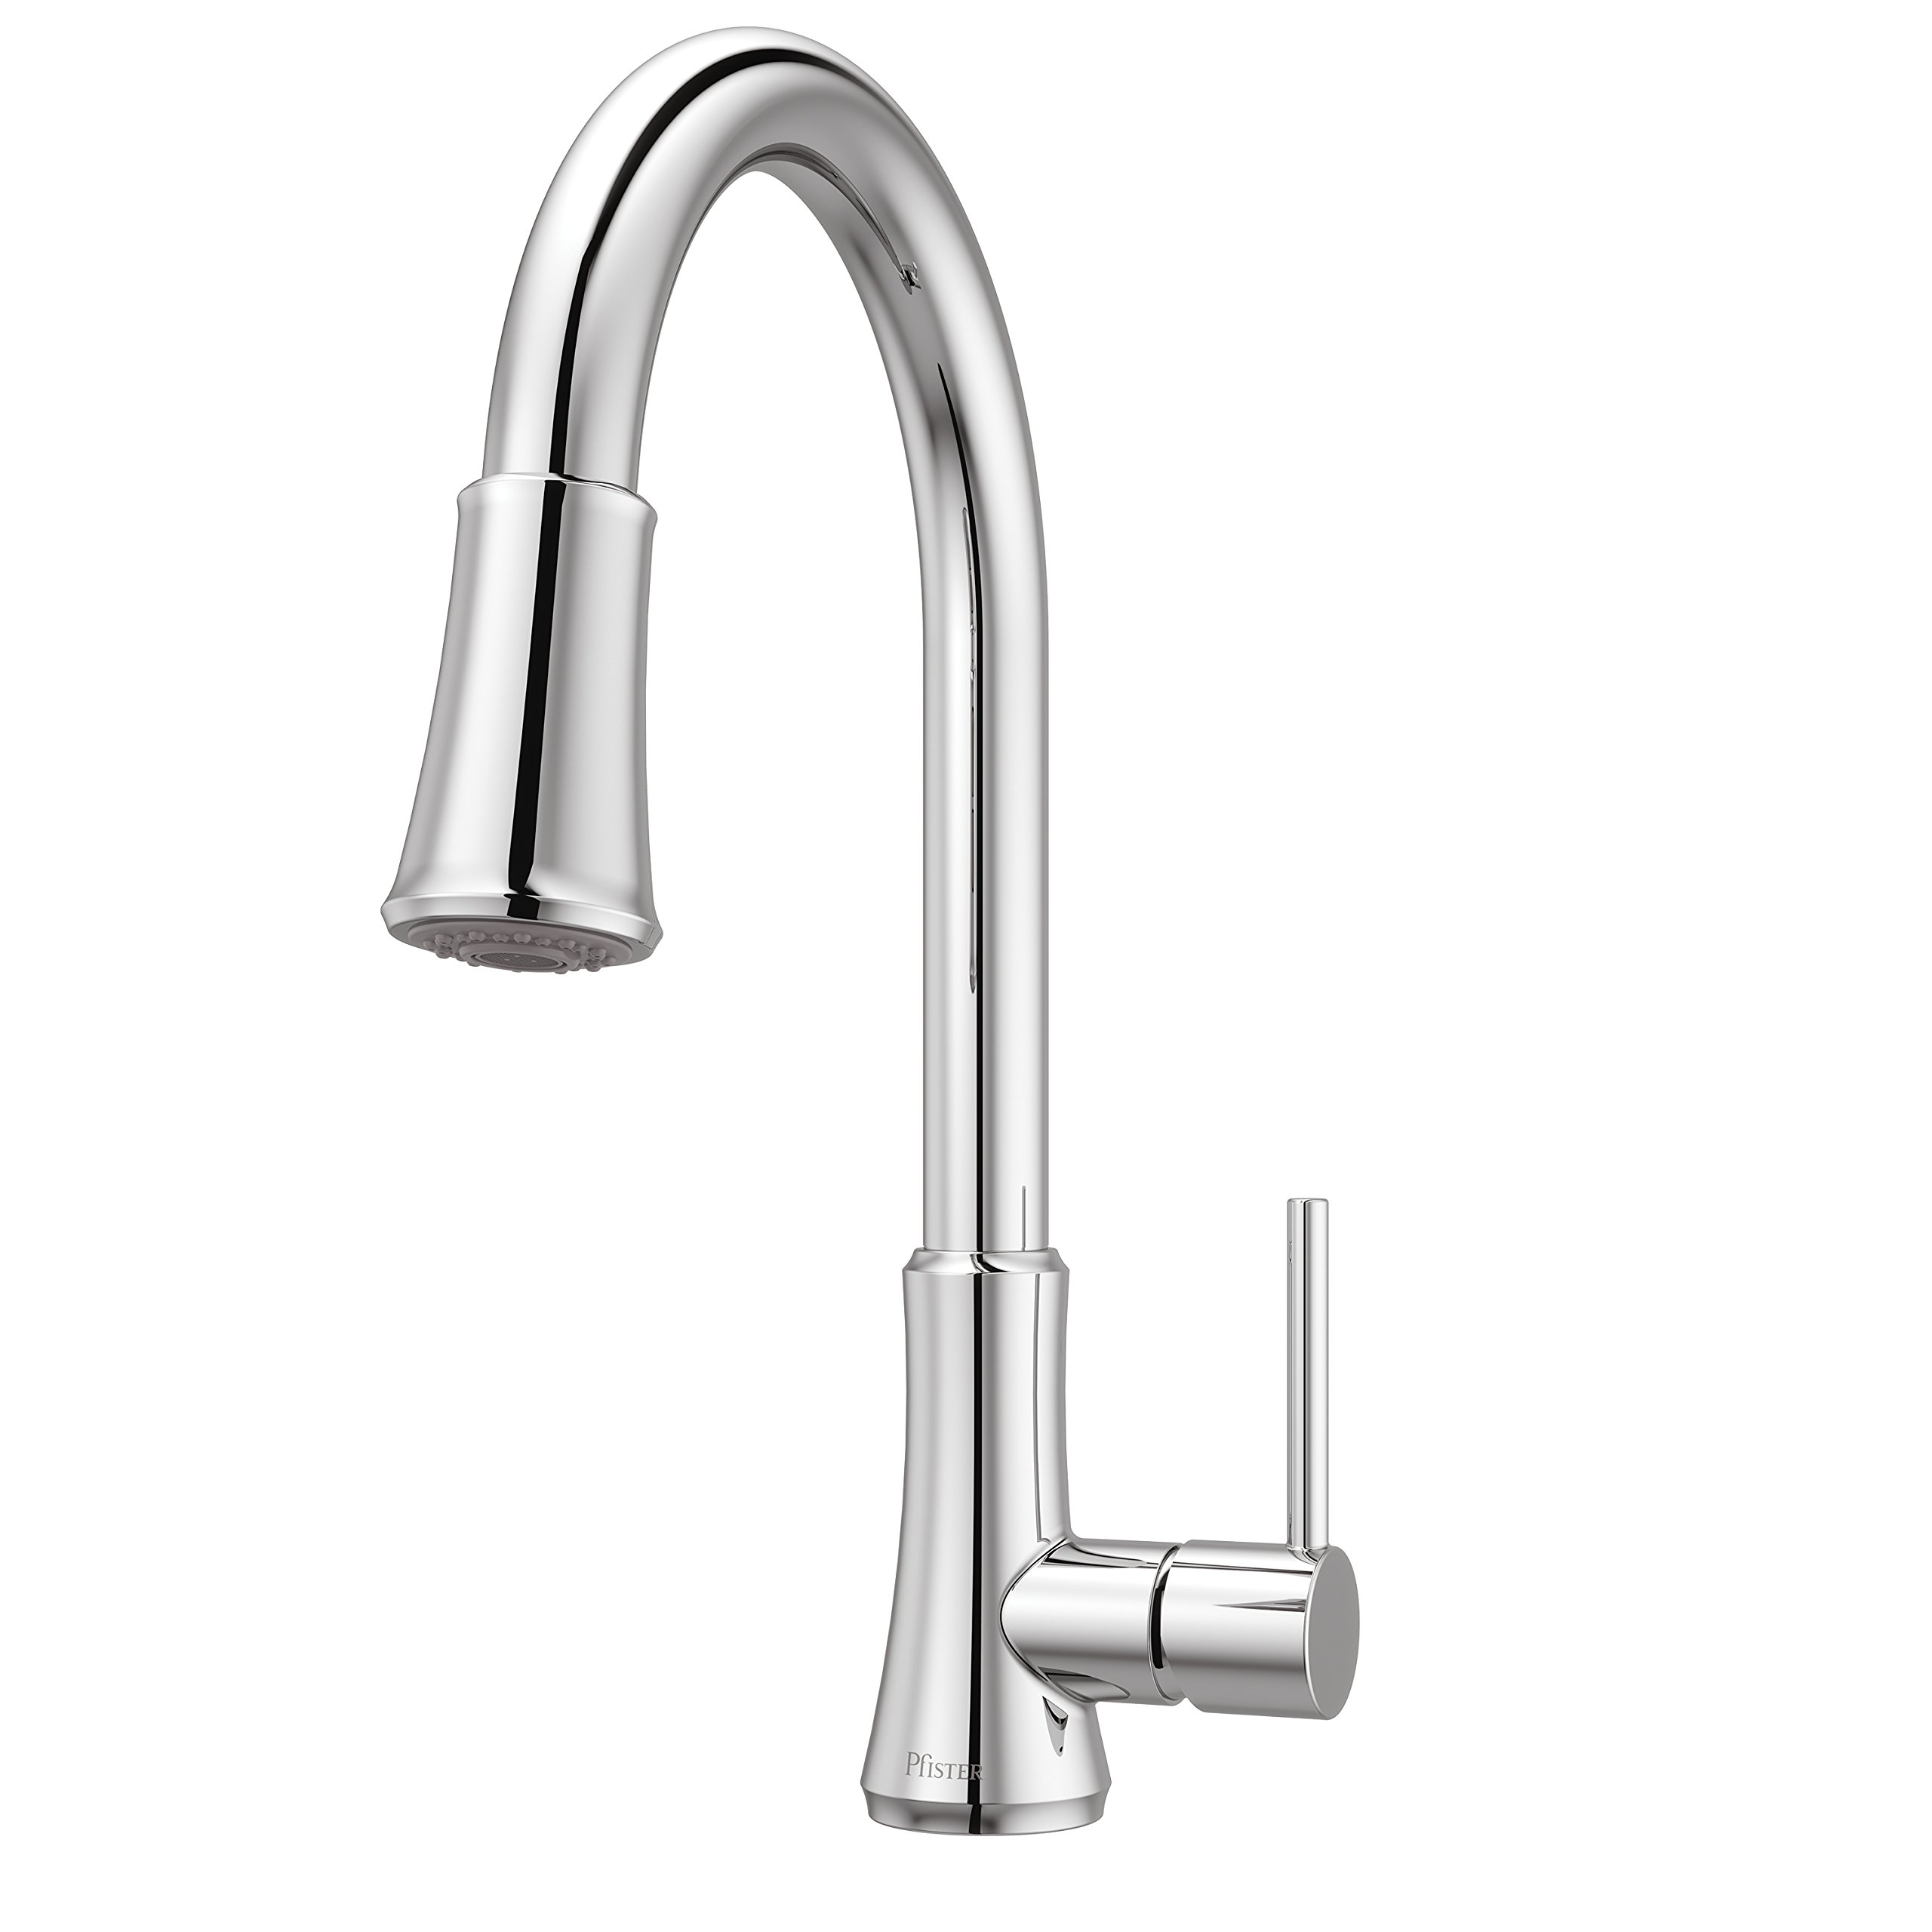 Details About Pfister G529PF1C Pfirst Series Single Handle Pull Down  Kitchen Faucet In